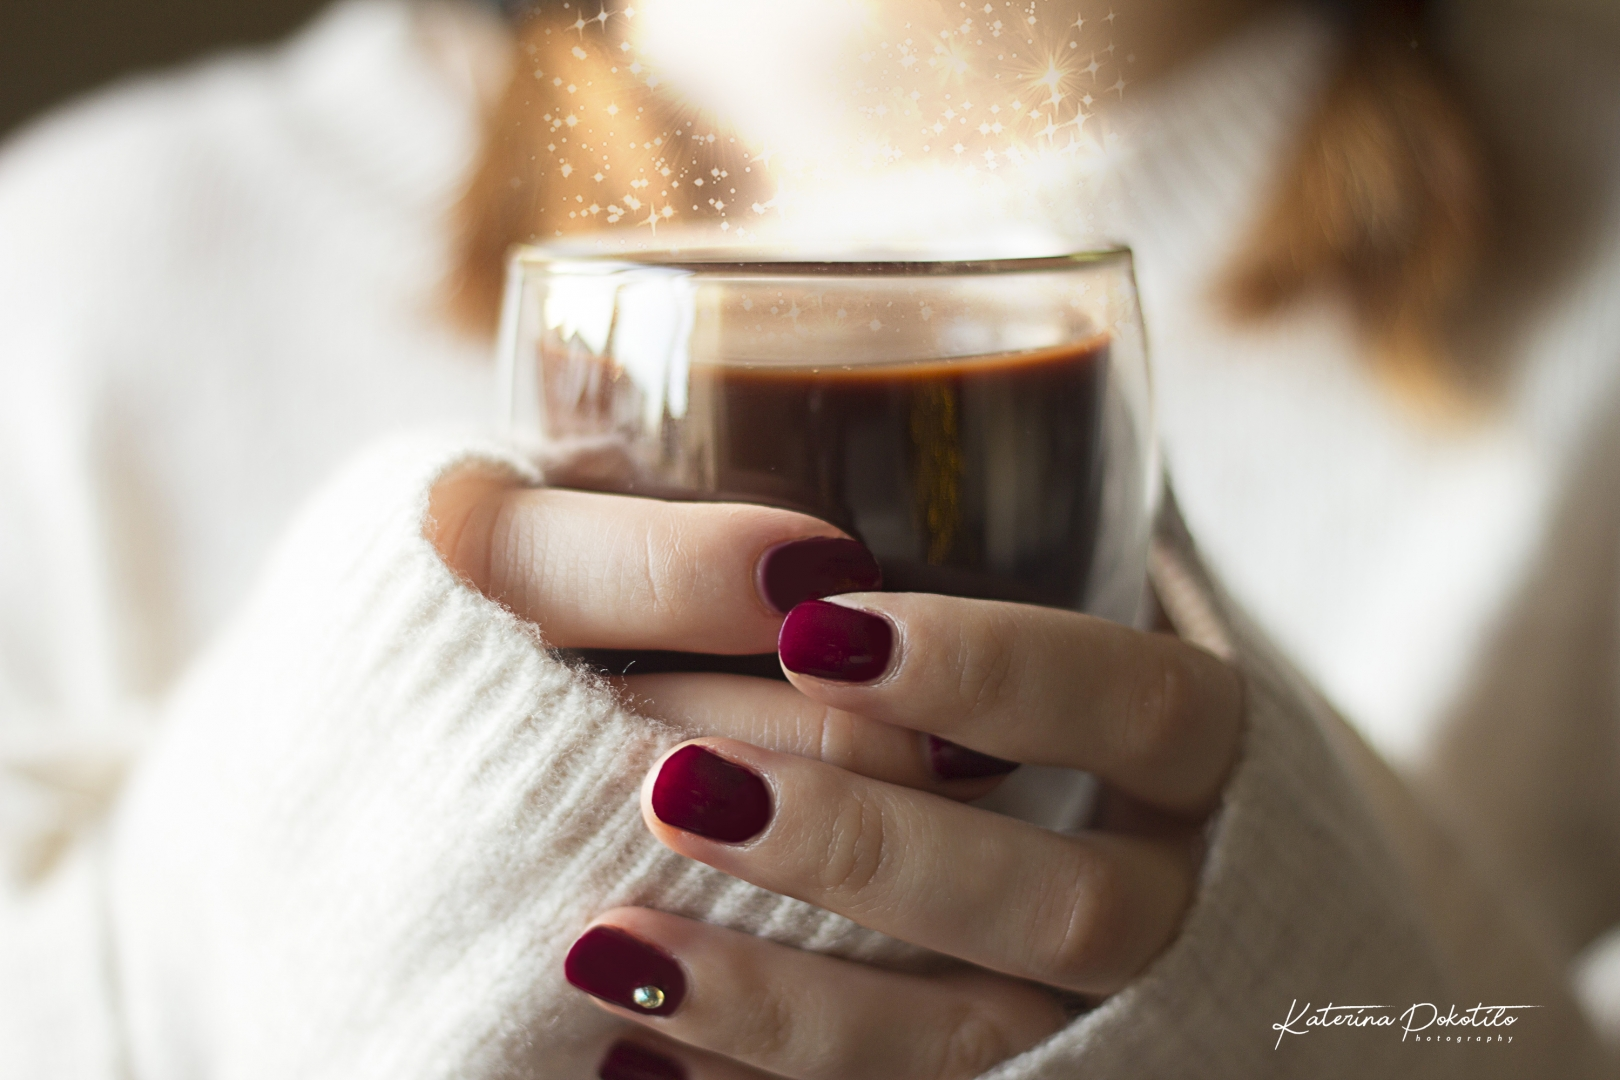 Ekaterina Pokotilo Warm hot chocolate with sparkles